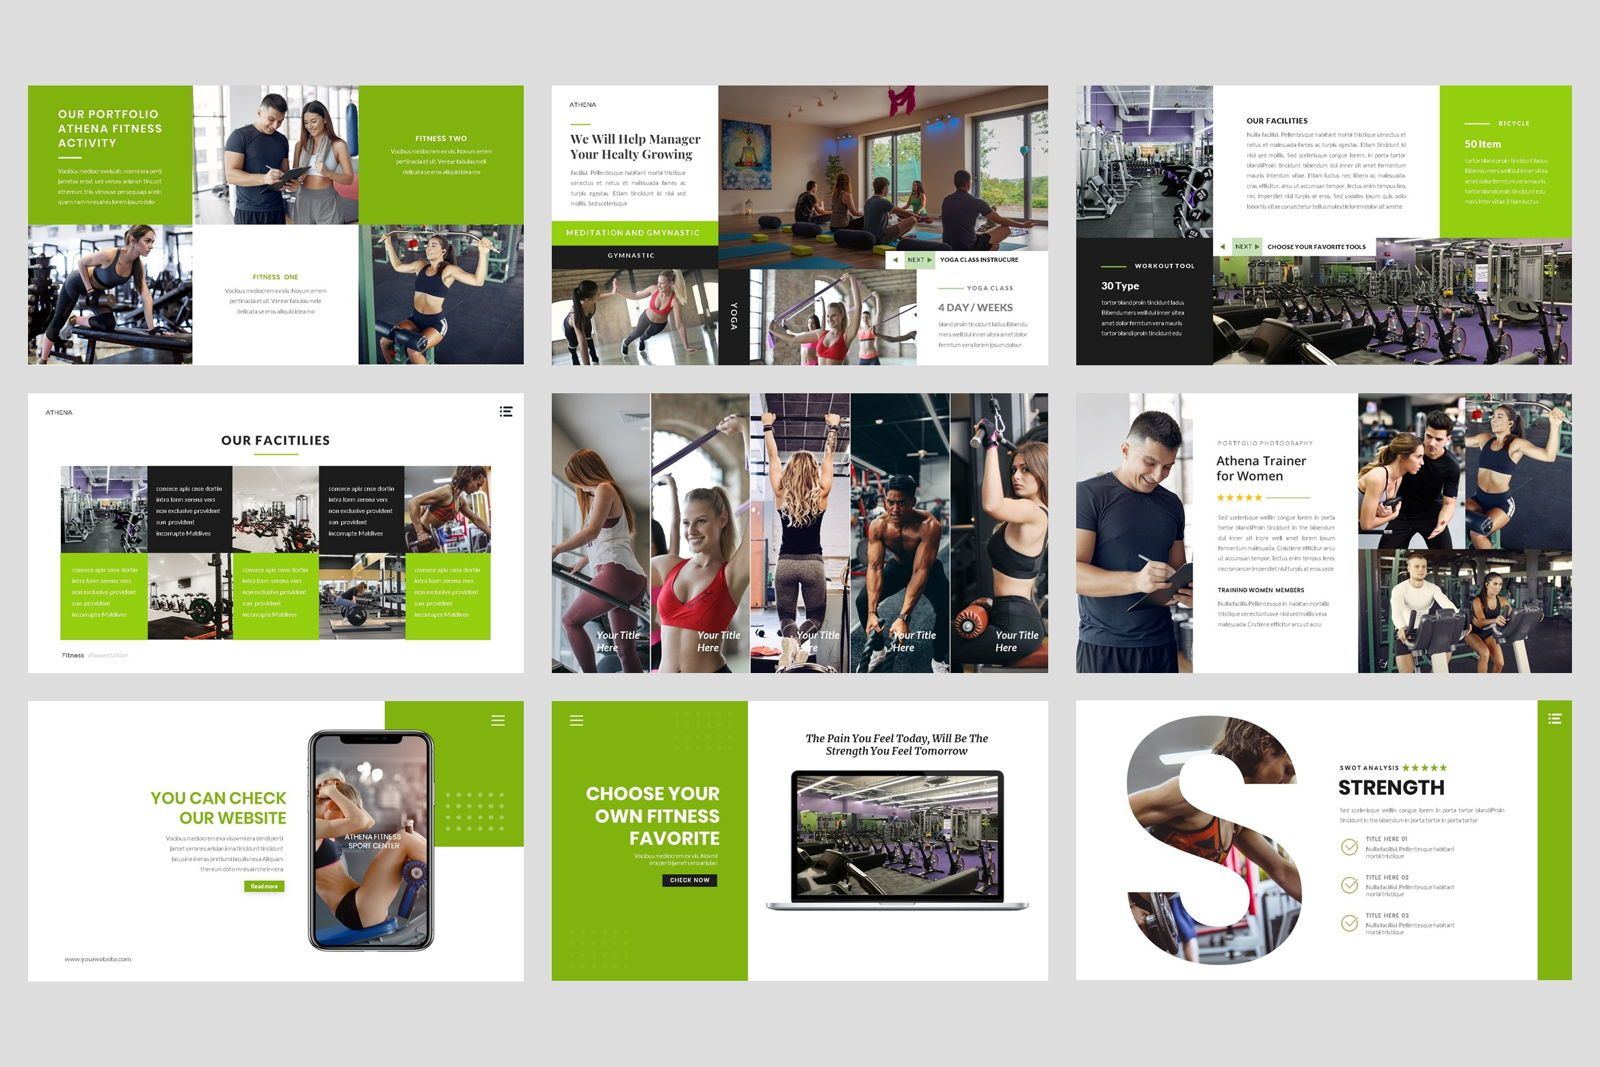 Sport - Fitness Business Workout Google Slide Template, Slide 4, 08577, Presentation Templates — PoweredTemplate.com